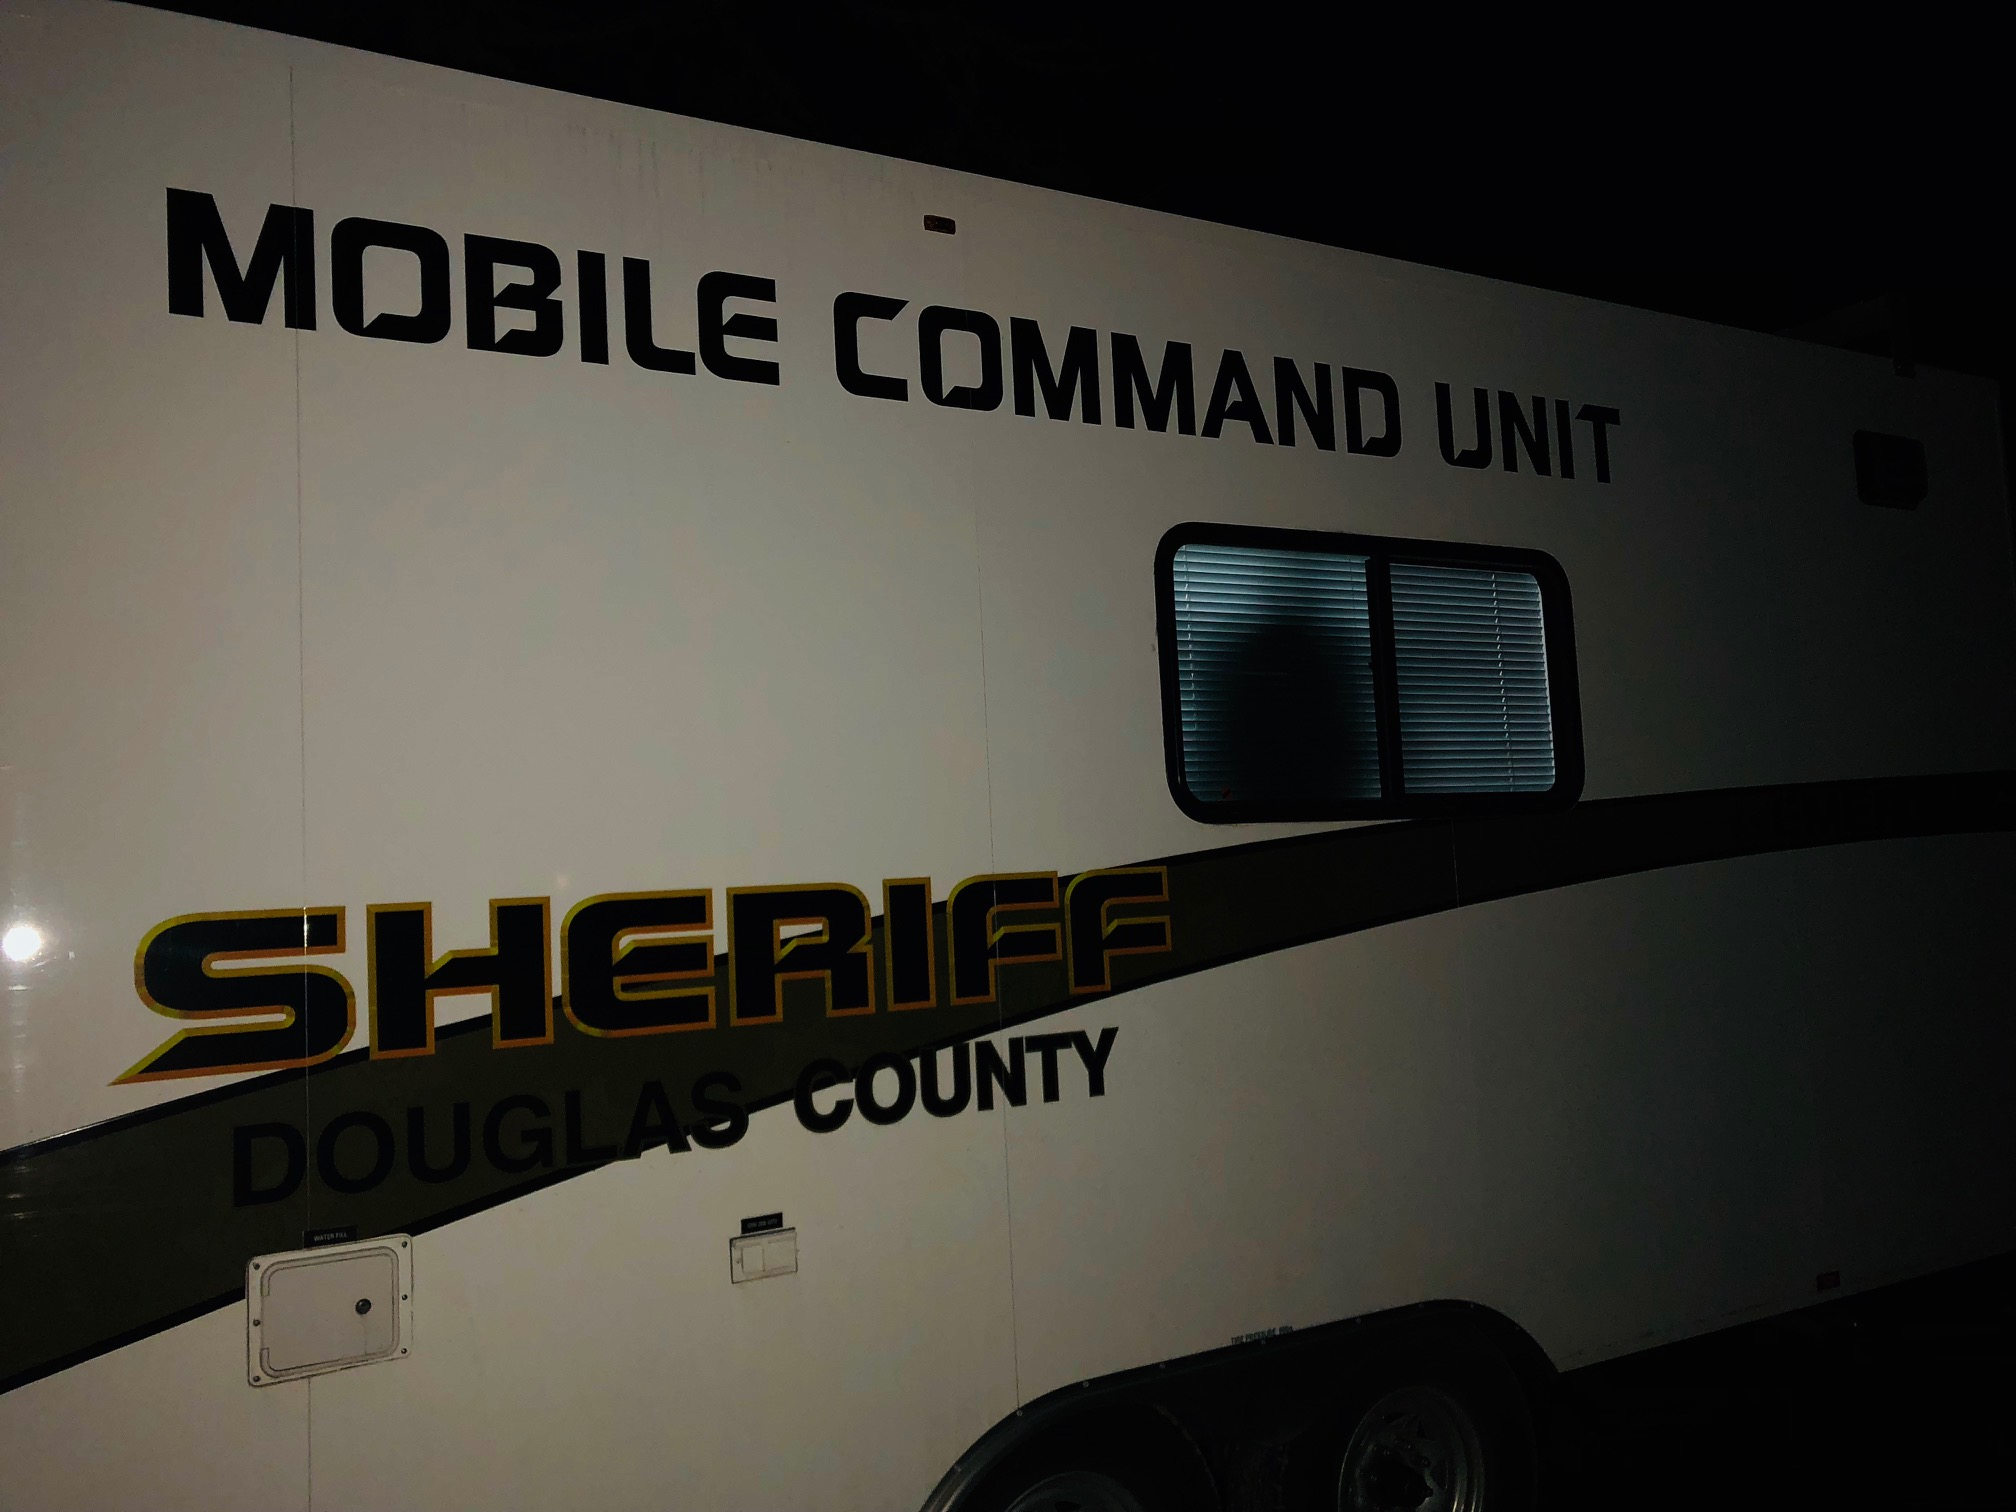 Douglas County Sheriff's Office Mobile Command Unit, March 15, 2018. (DCSO photo)